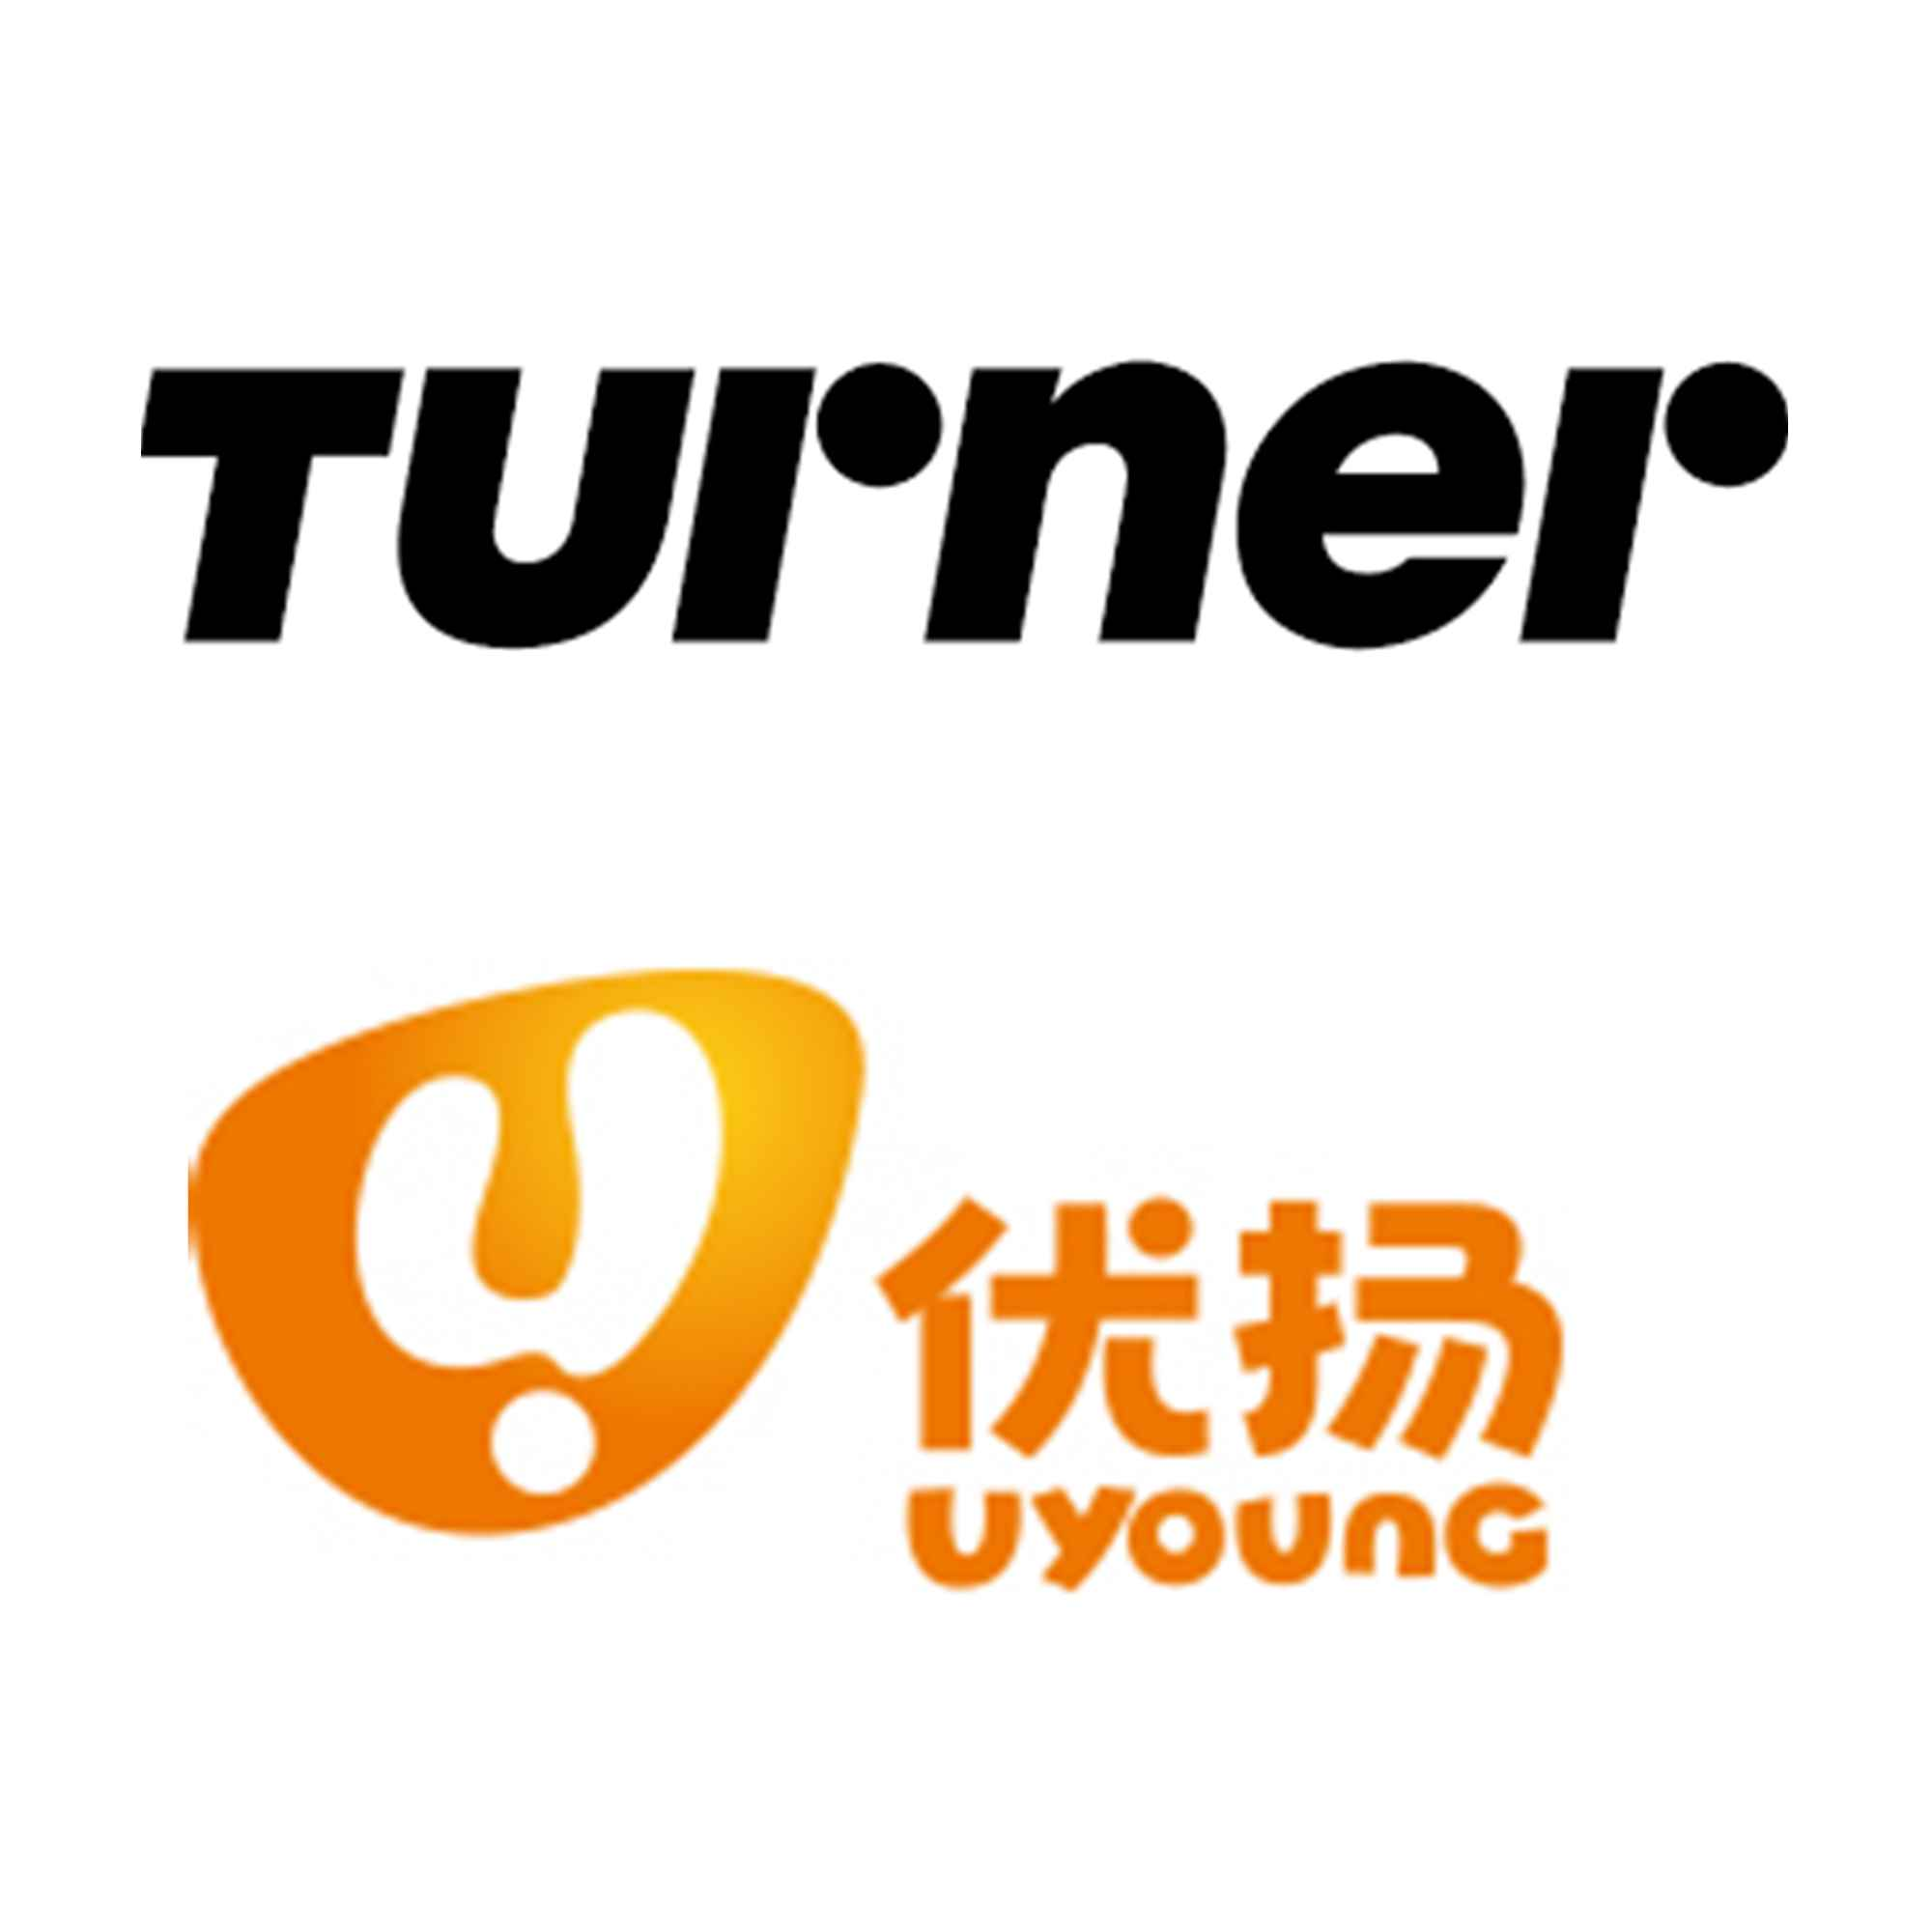 Cartoon Network Owners Turner Partners With Chinese Animation Company UYoung To Develop A New Animation IP